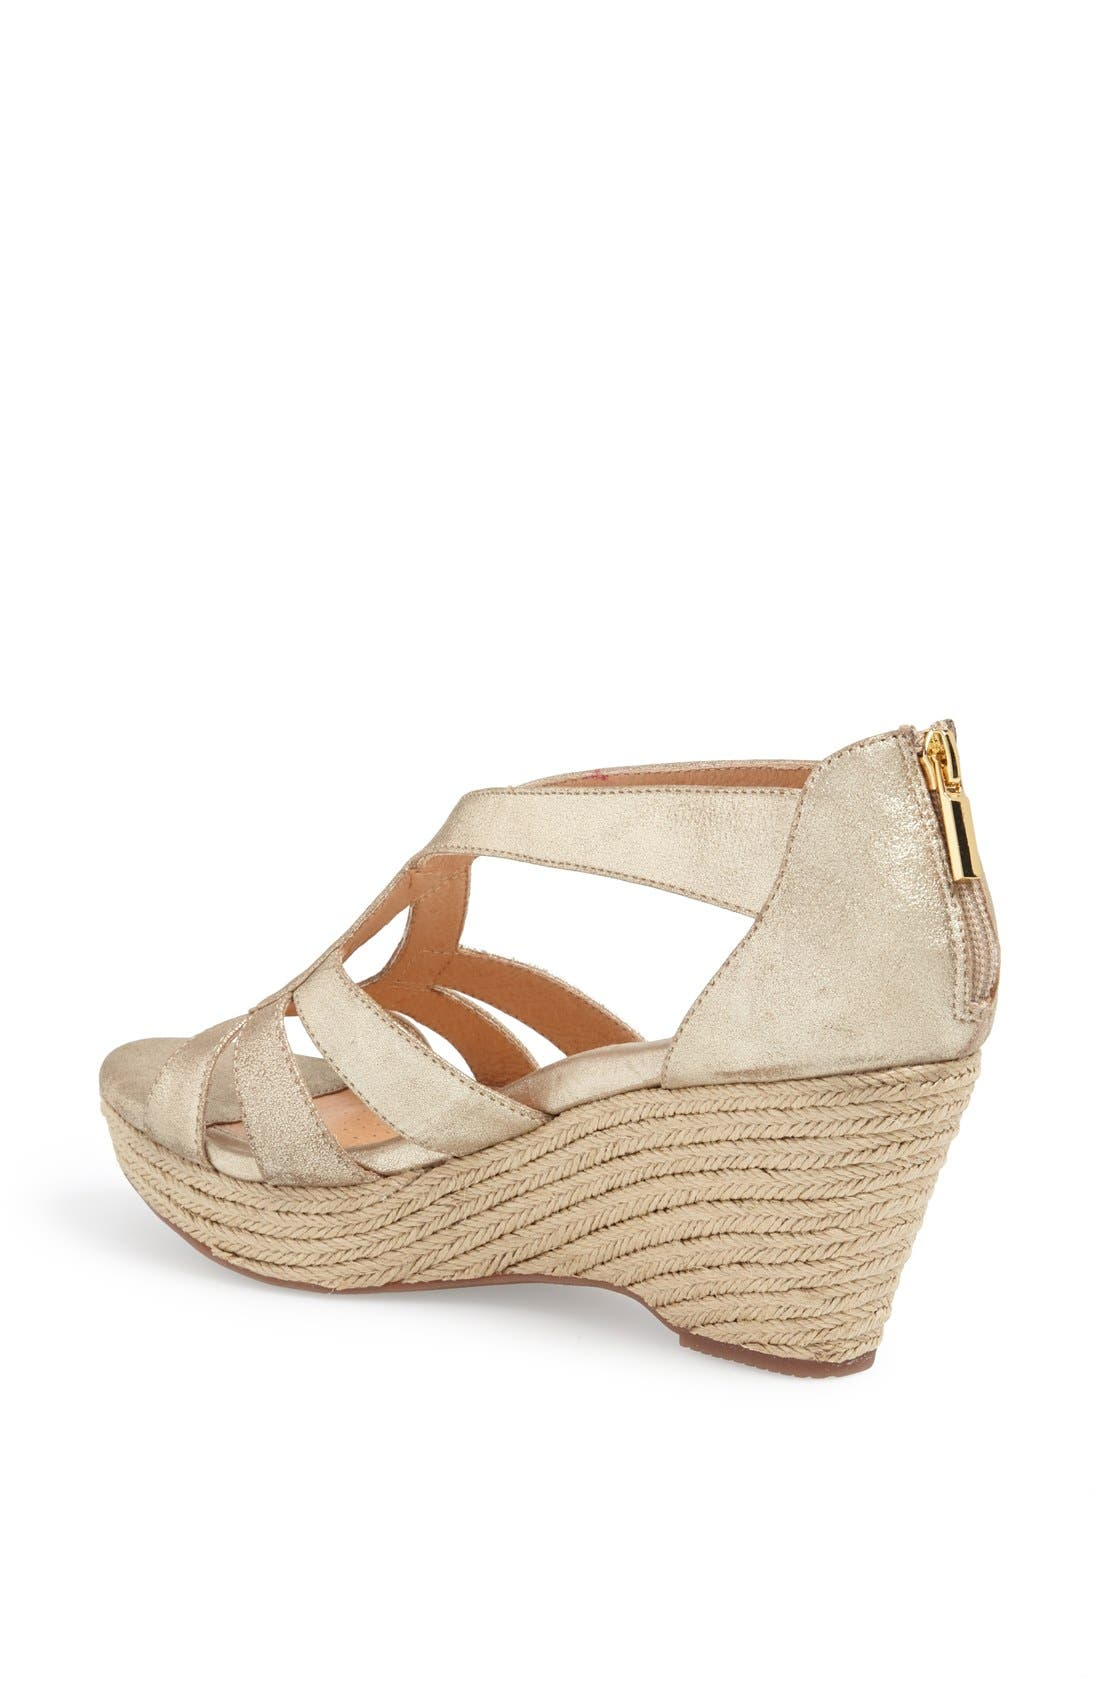 Alternate Image 2  - Söfft 'Mena' Espadrille Wedge Sandal